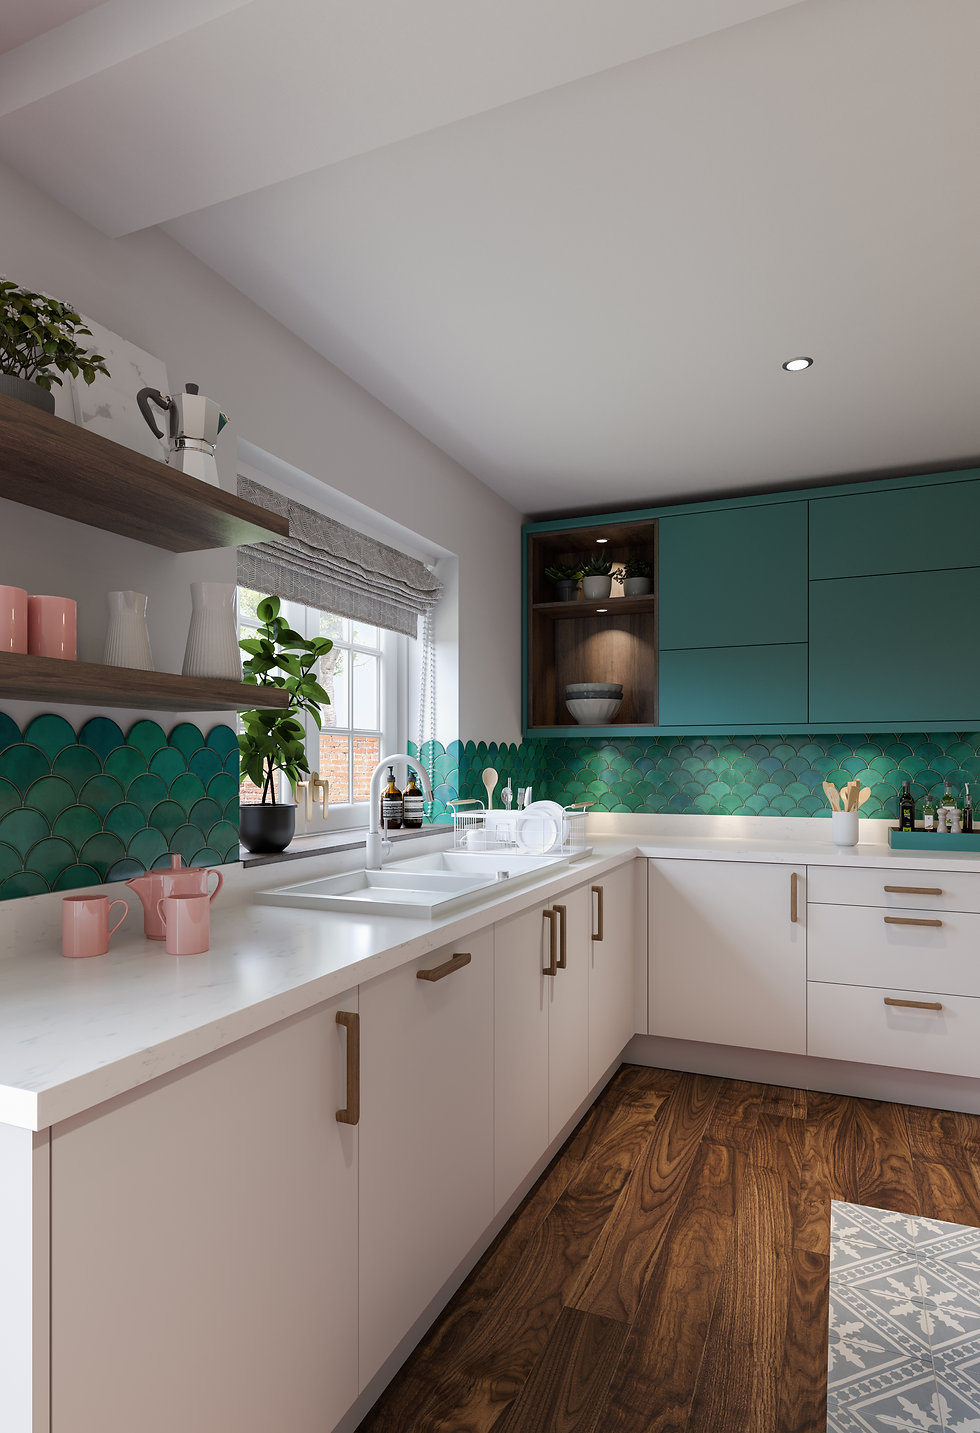 Eclectic style kitchen